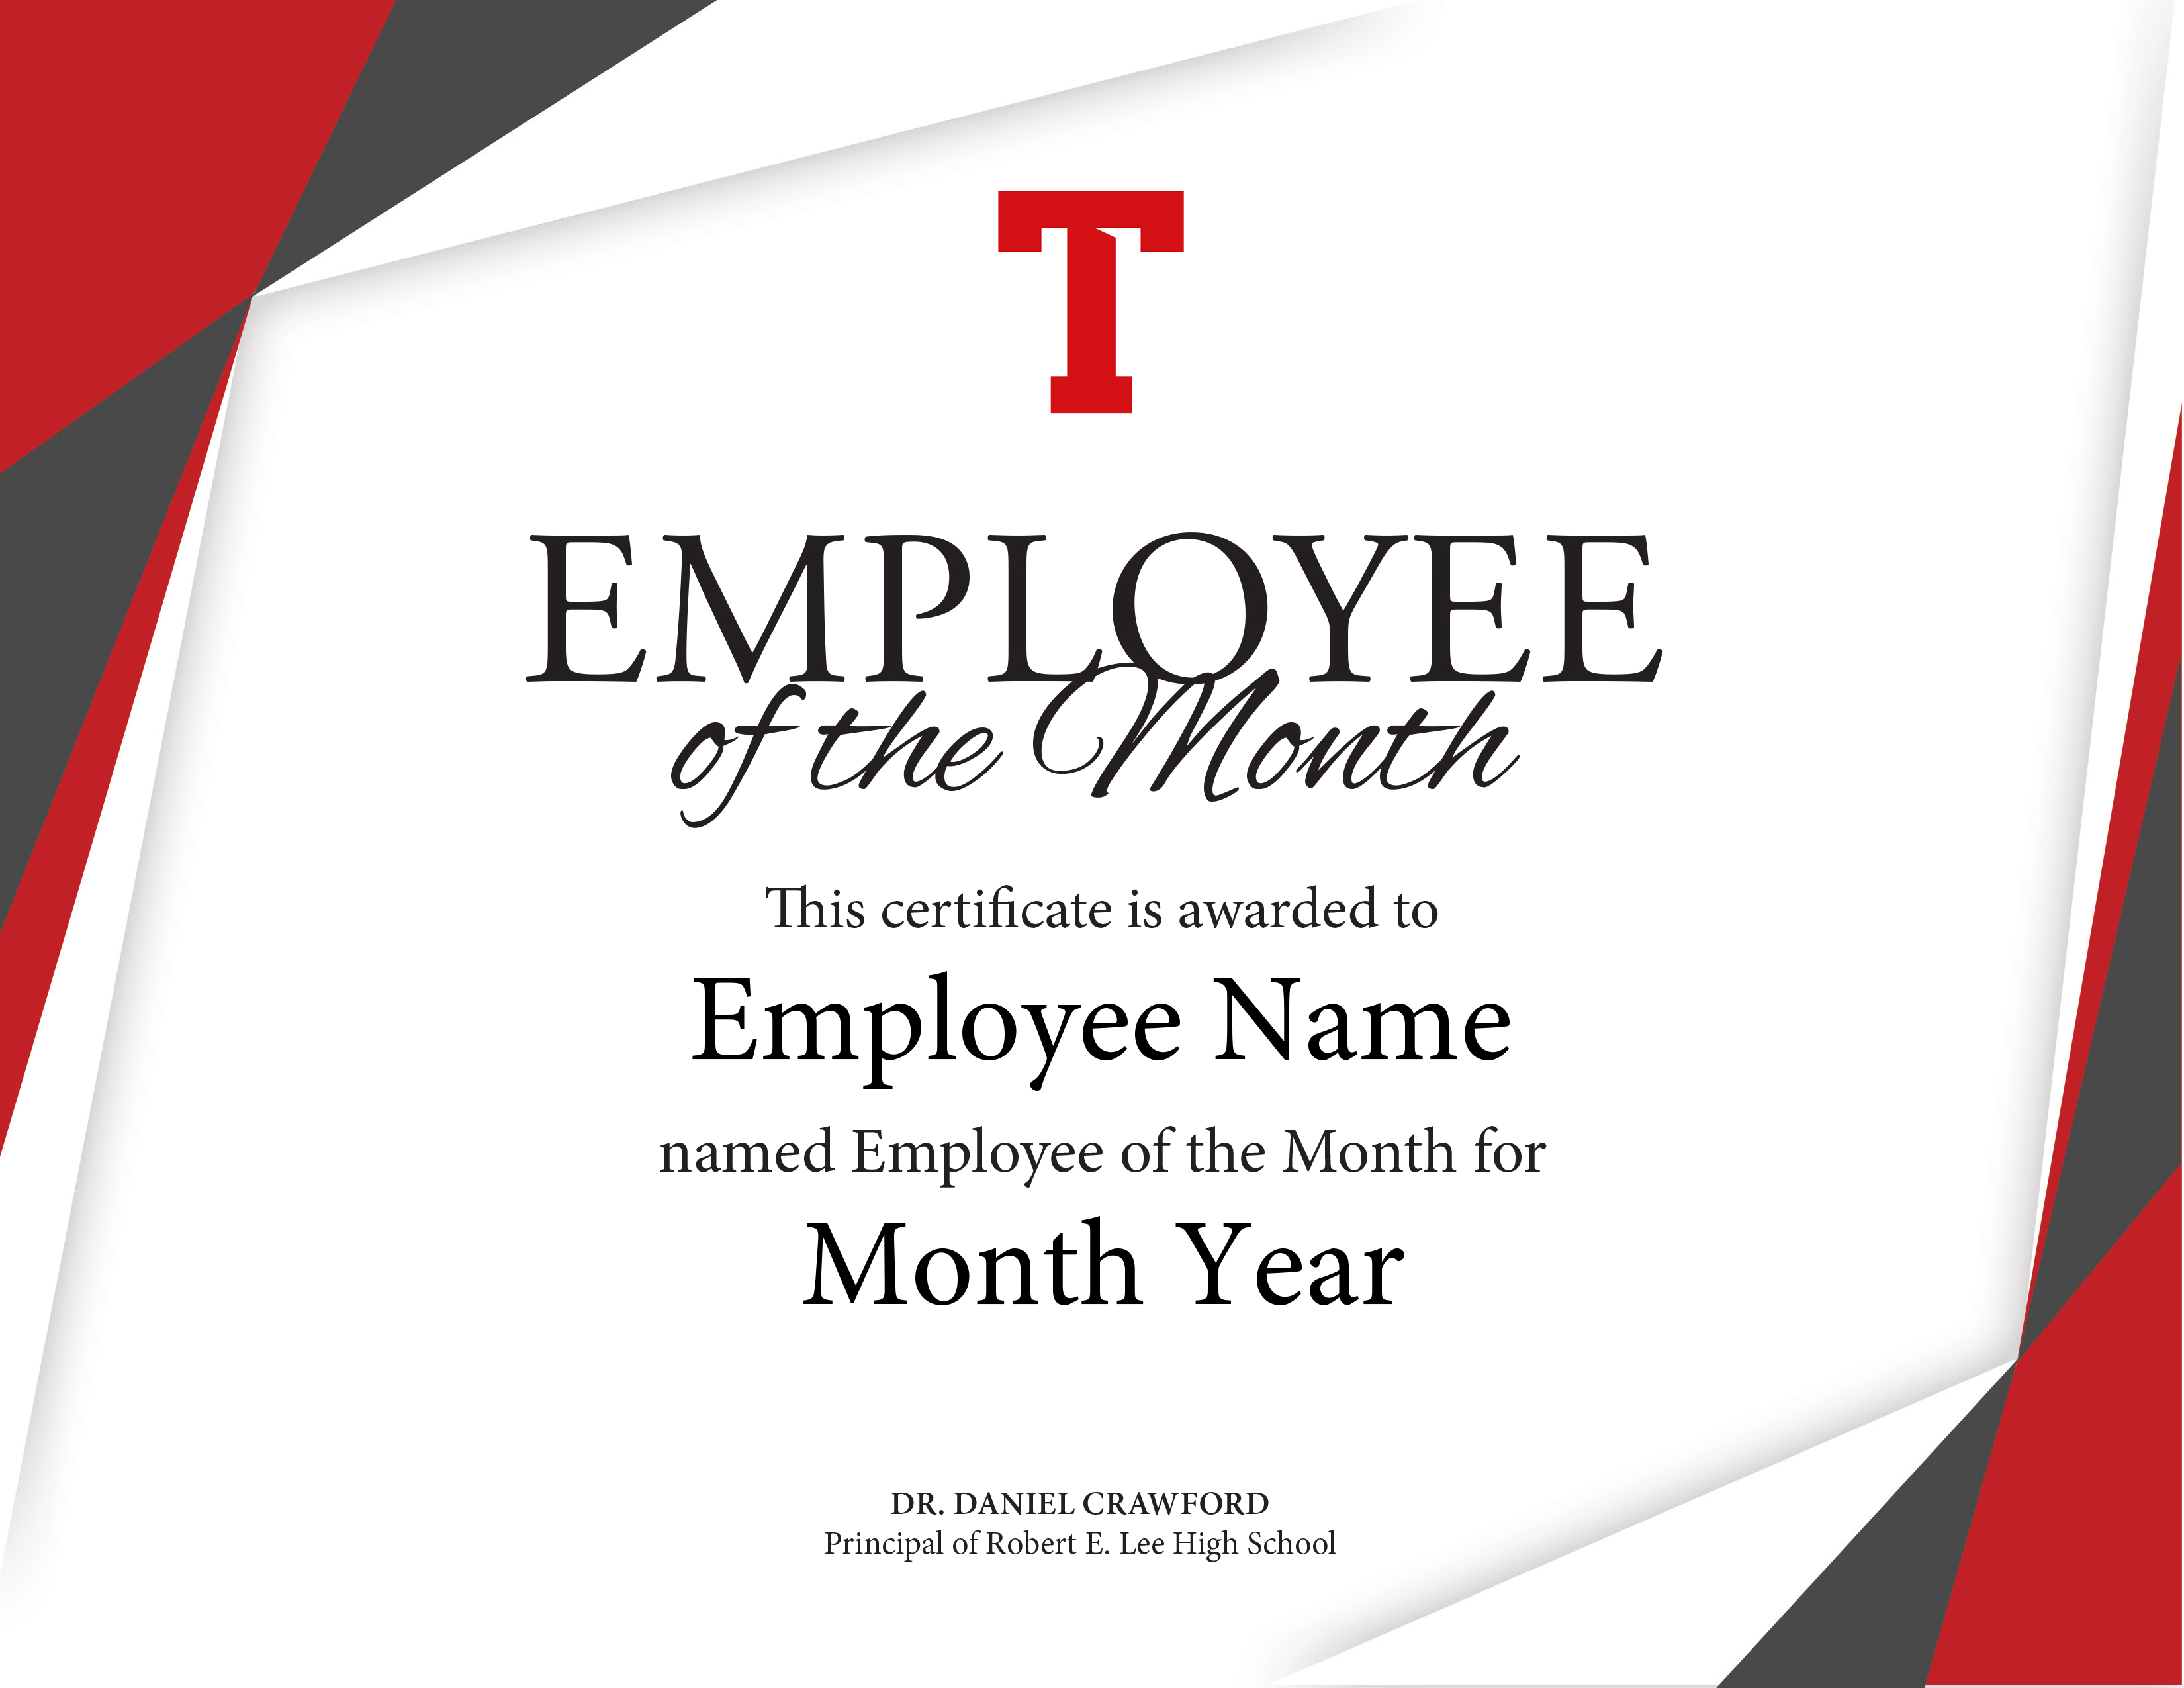 employee of the month certificate template - tyler lee employee of the month certificate